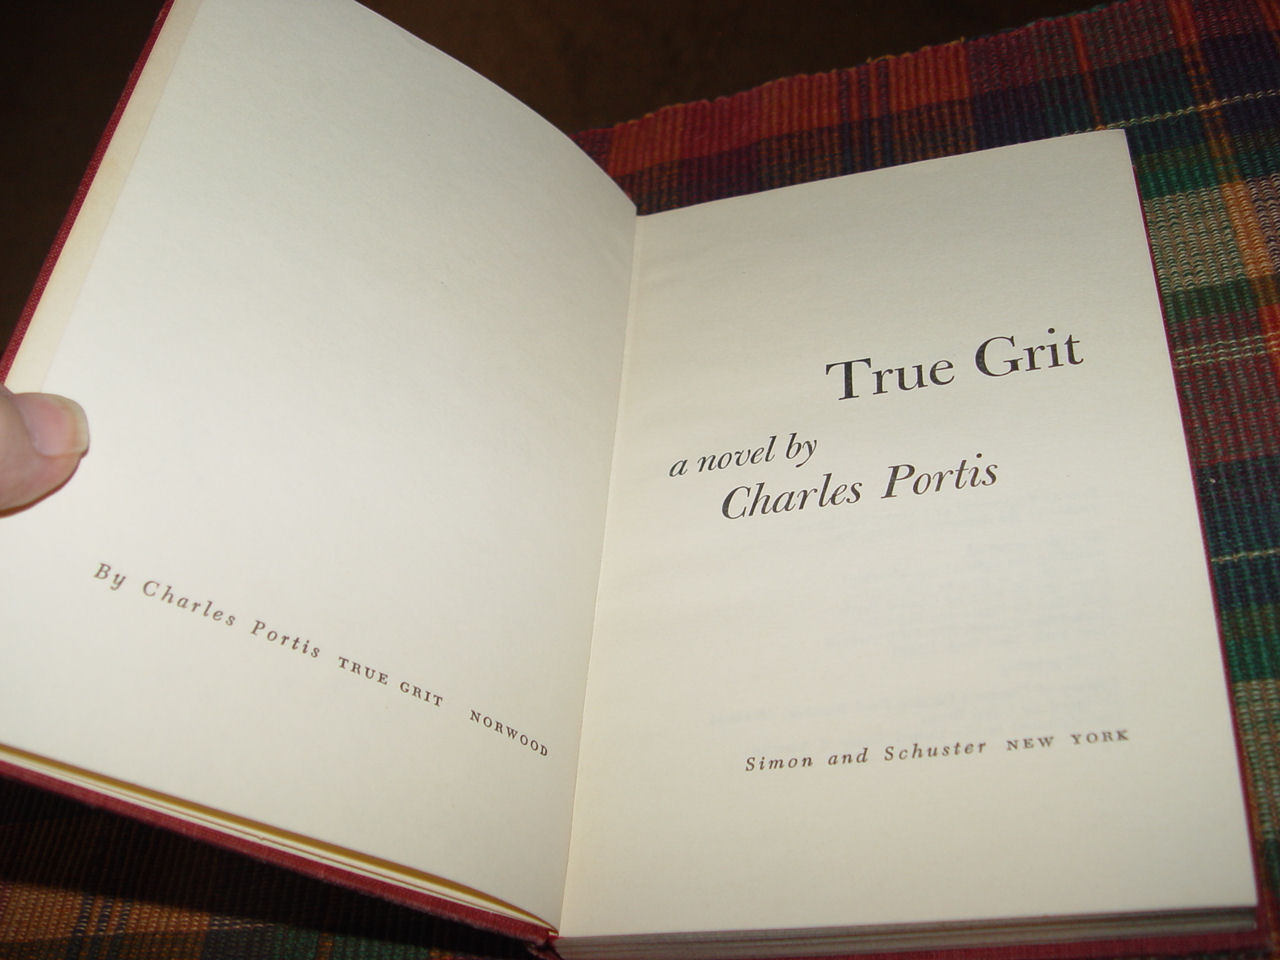 True Grit, Charles Portis                                         First Edition, 4th Printing 1968                                         HC Simon & Schuster